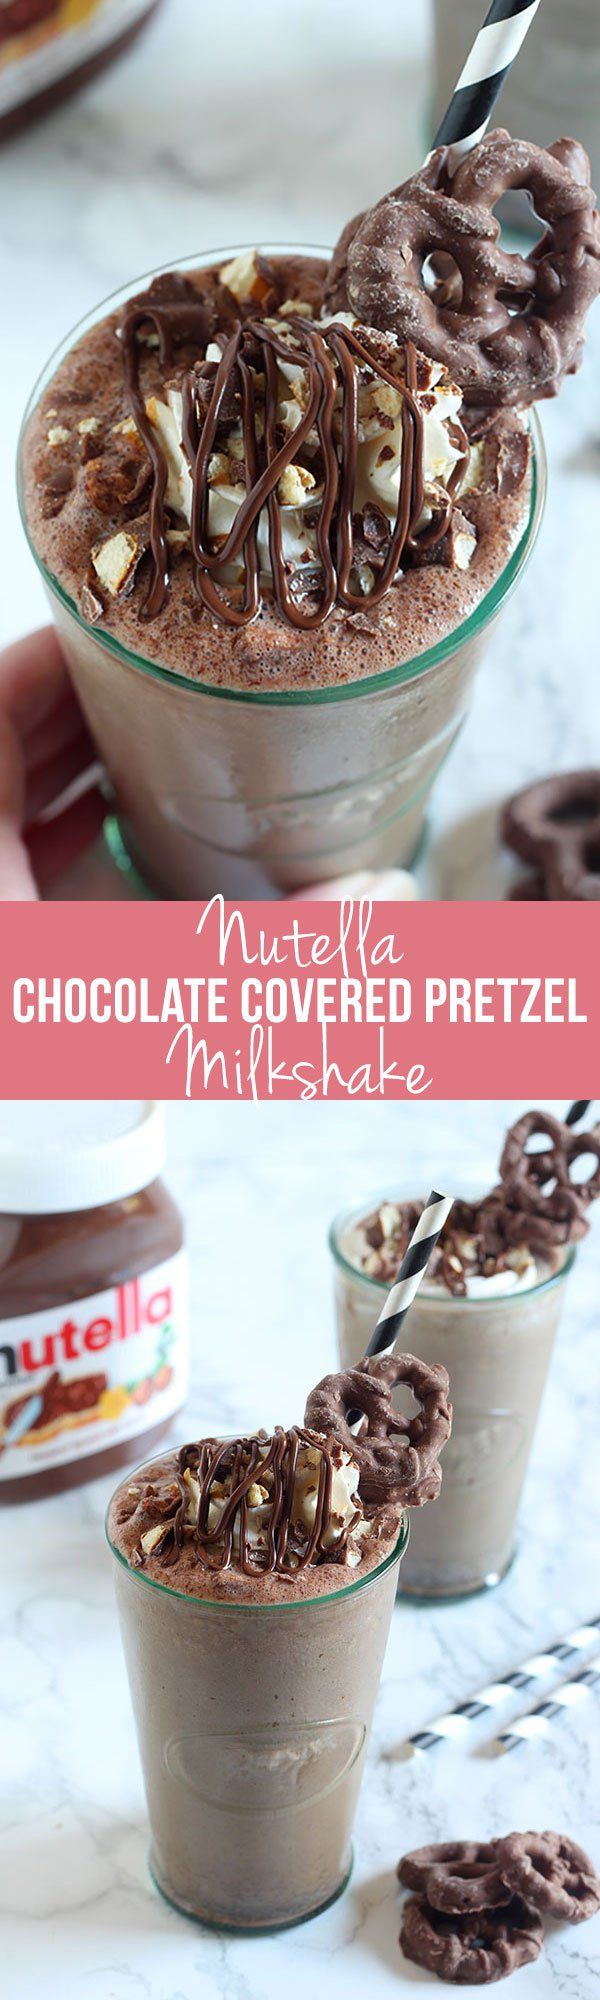 Holy WOW! Nutella Chocolate Covered Pretzel Milkshake features a chocolate Nutella milkshake with bits of chocolate covered pretzels, topped with whipped cream, more Nutella, and more pretzels! Complete decadence in a drink.